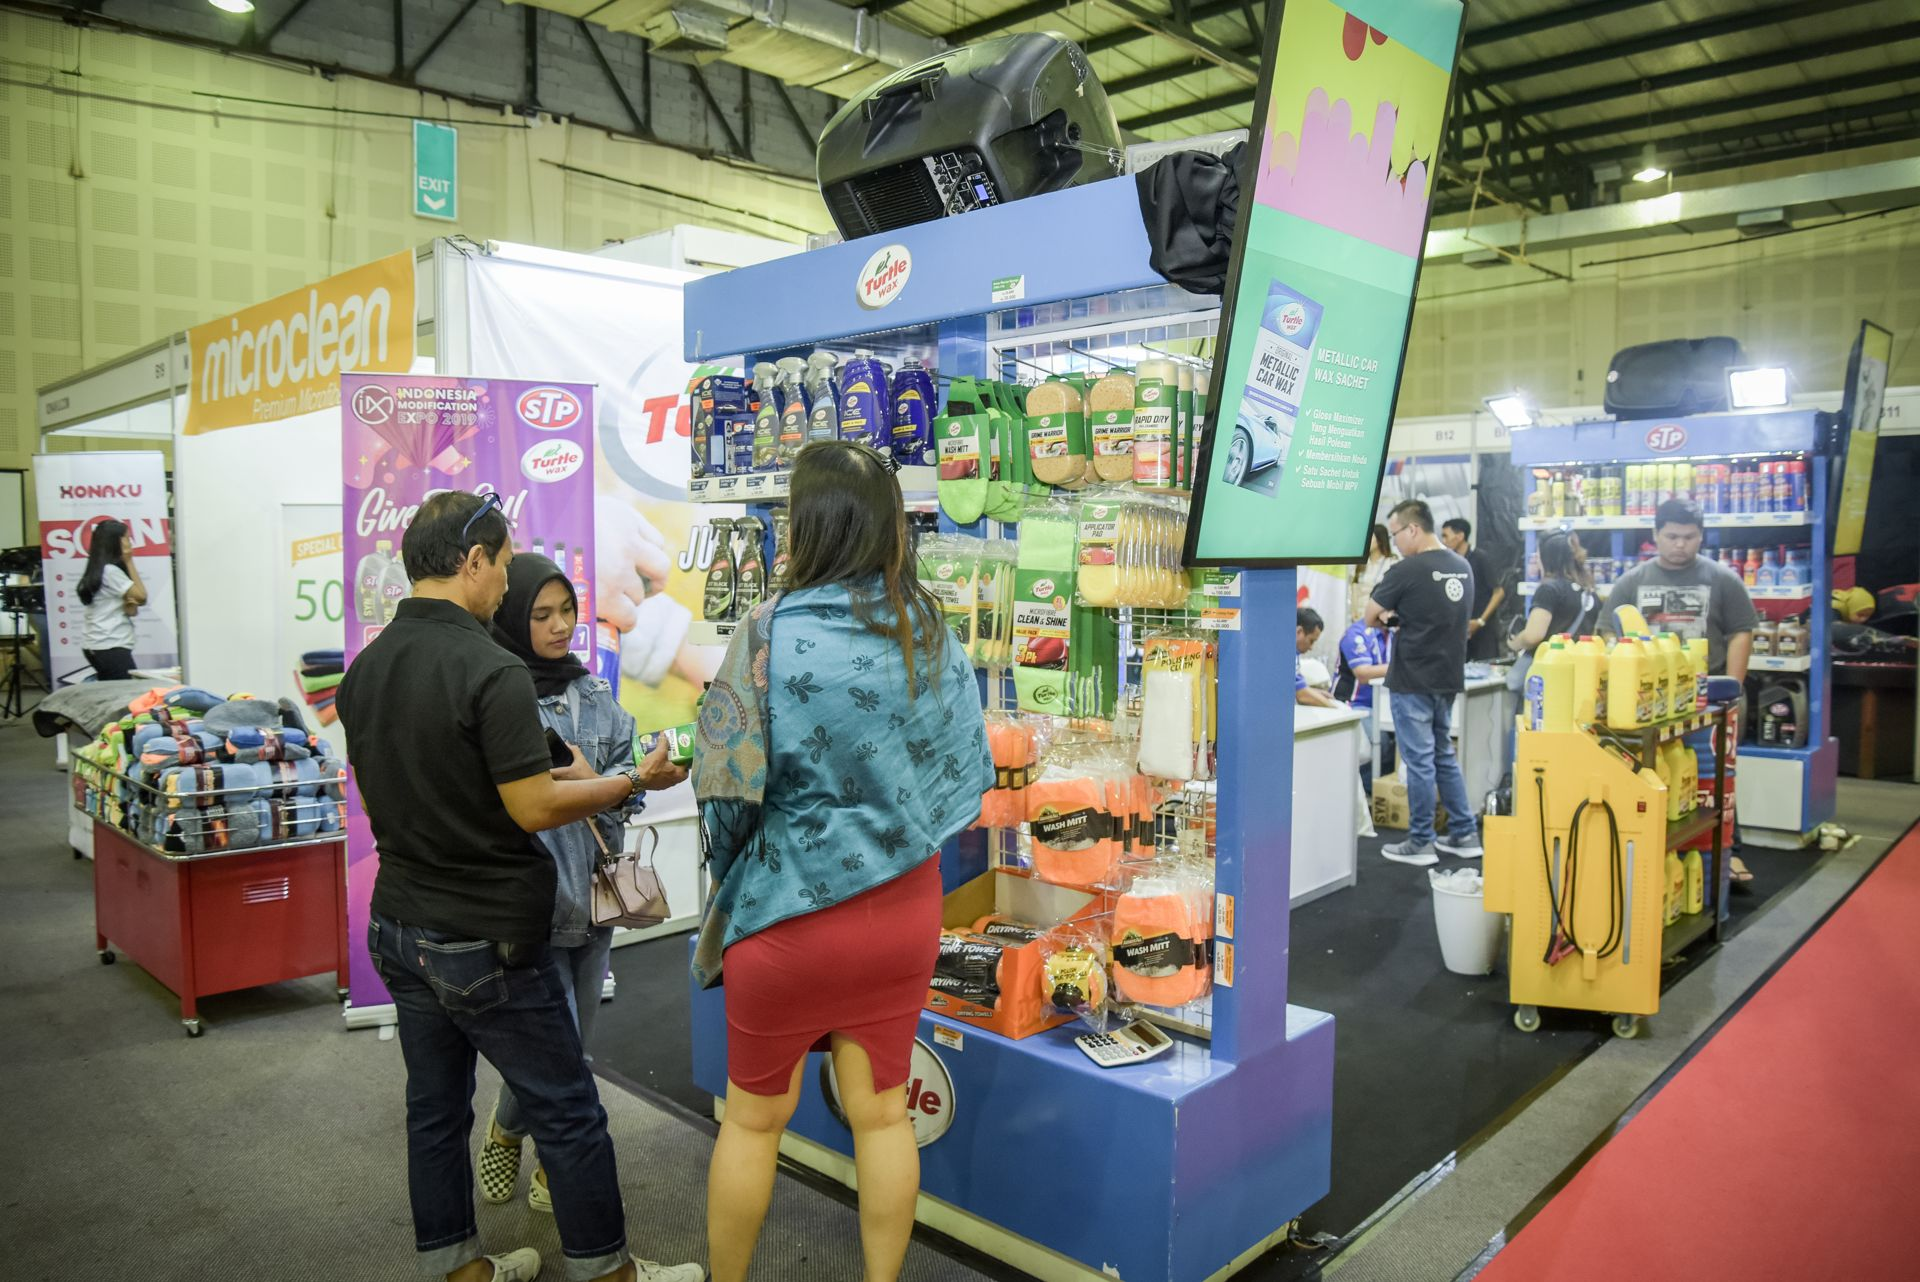 Imx aftermarket expo 2019 (8)